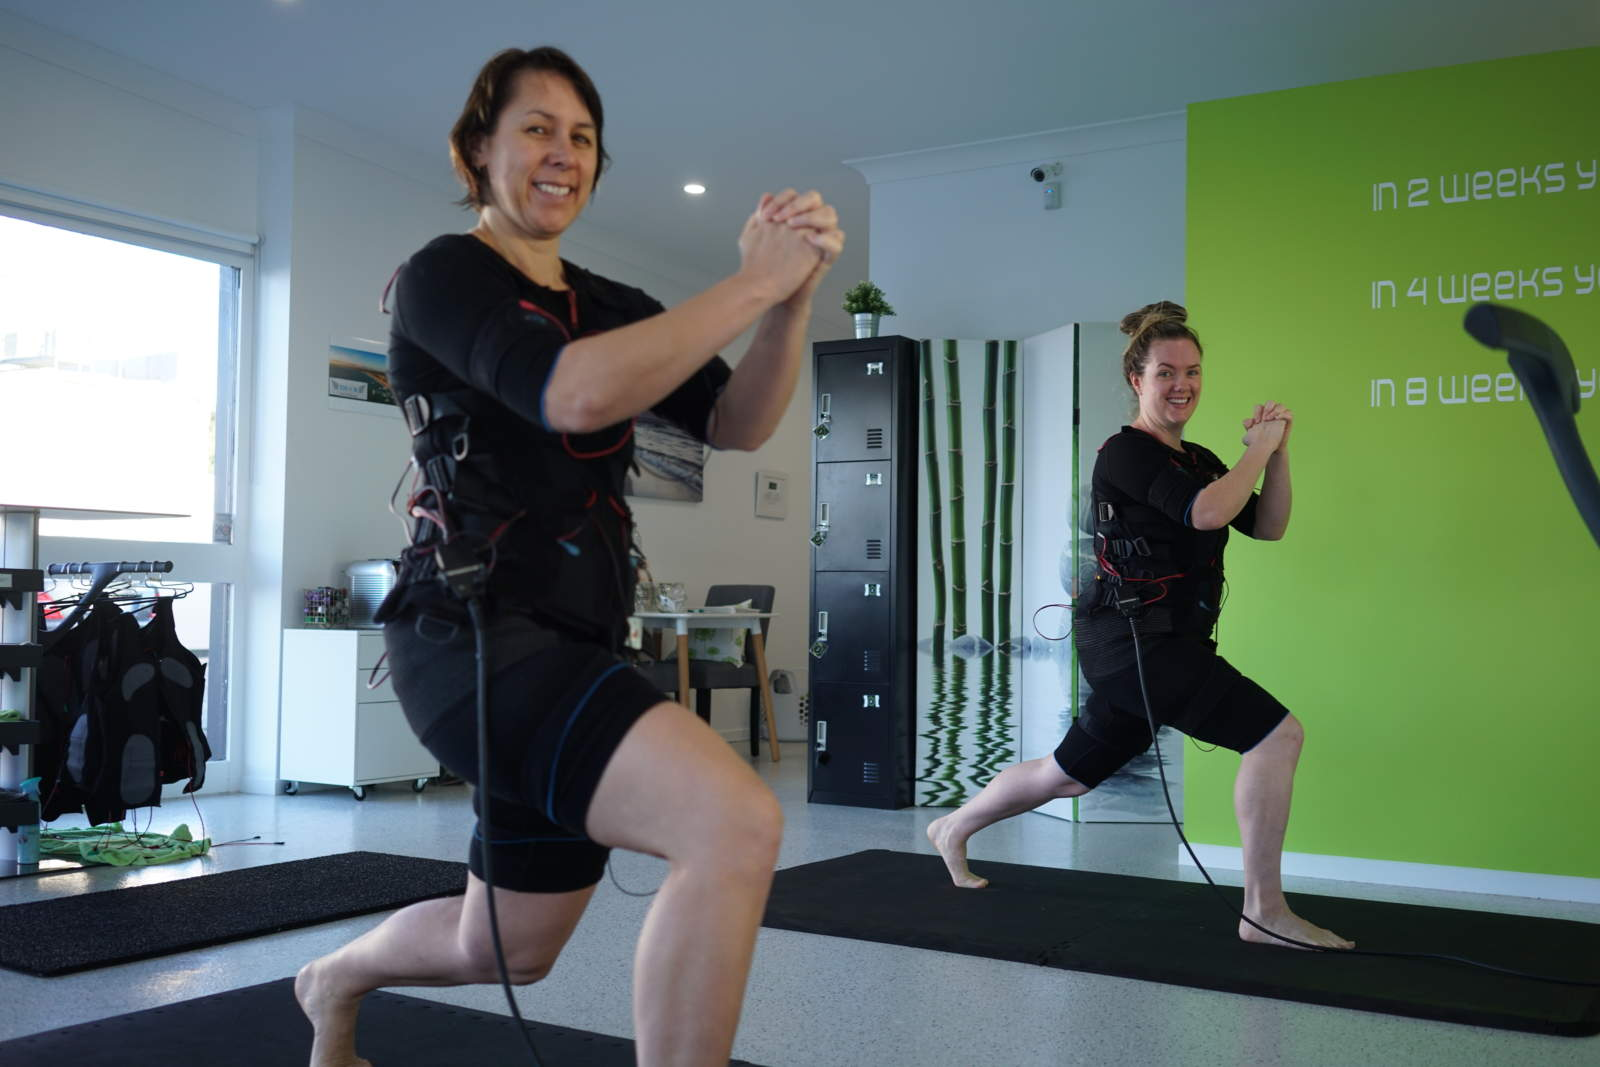 5 tips from your Personal Trainer to get the most out of your FITIN20 EMS workout 21